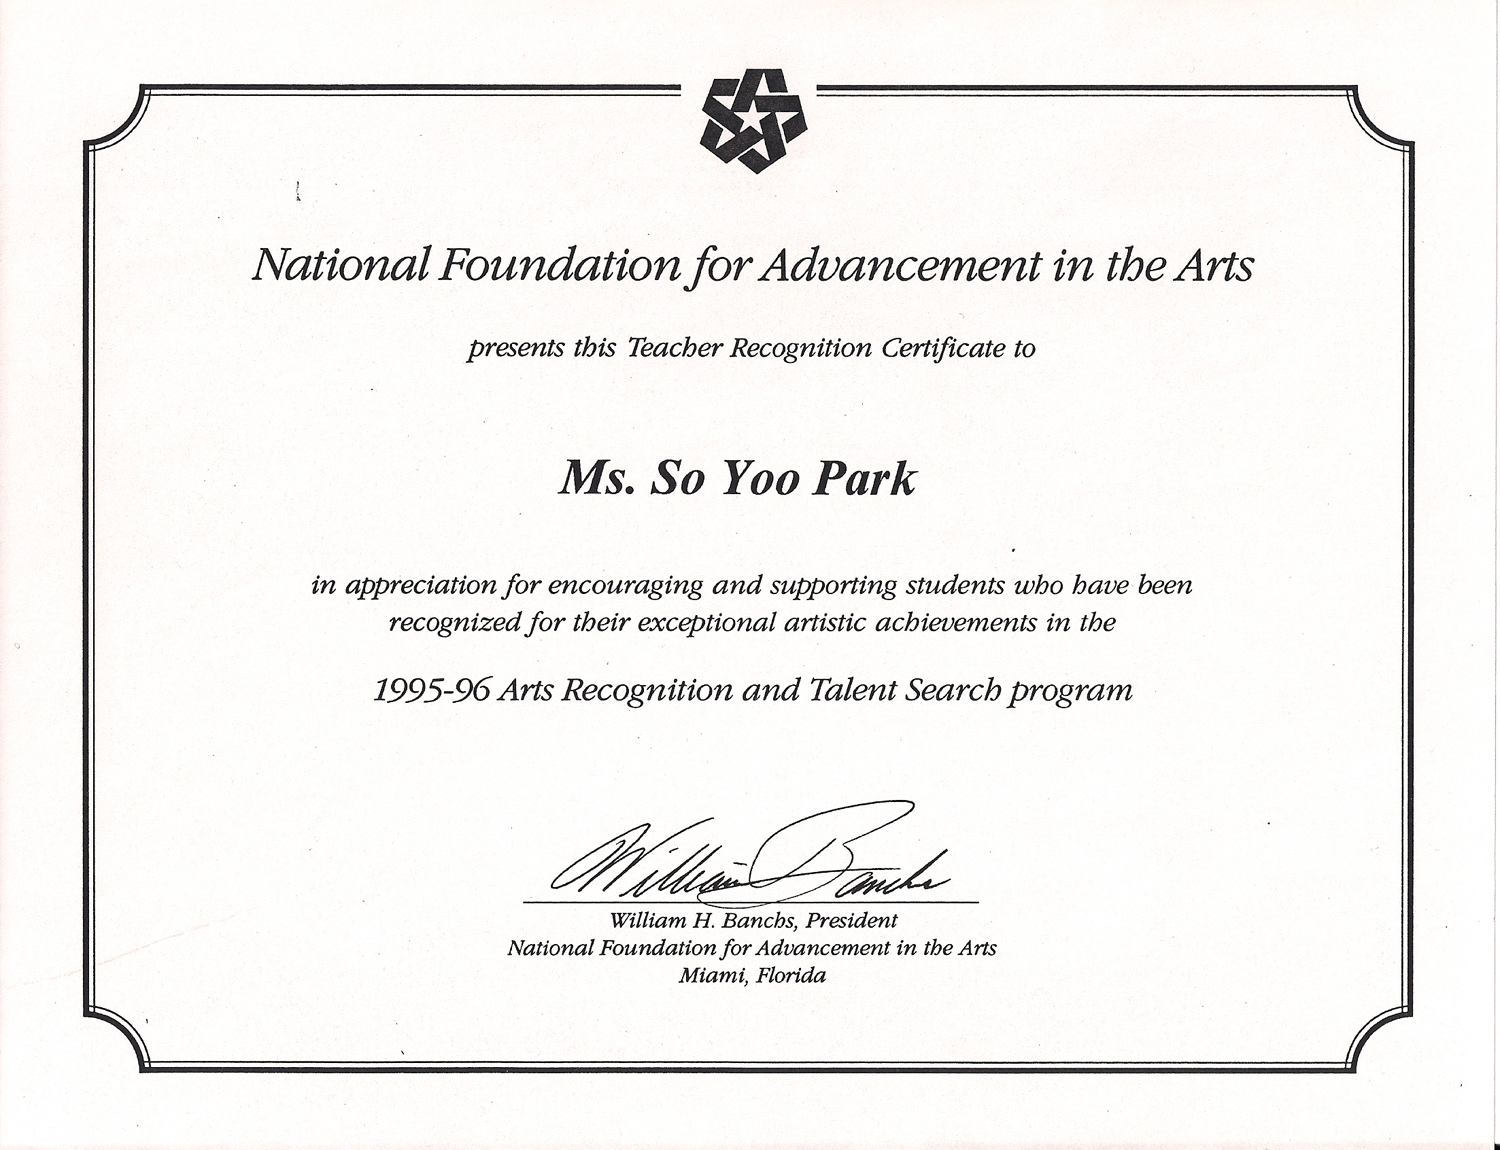 Soyoos resume 1995 06 received the certificate of teacher recognition from national foundation for advancement yadclub Gallery